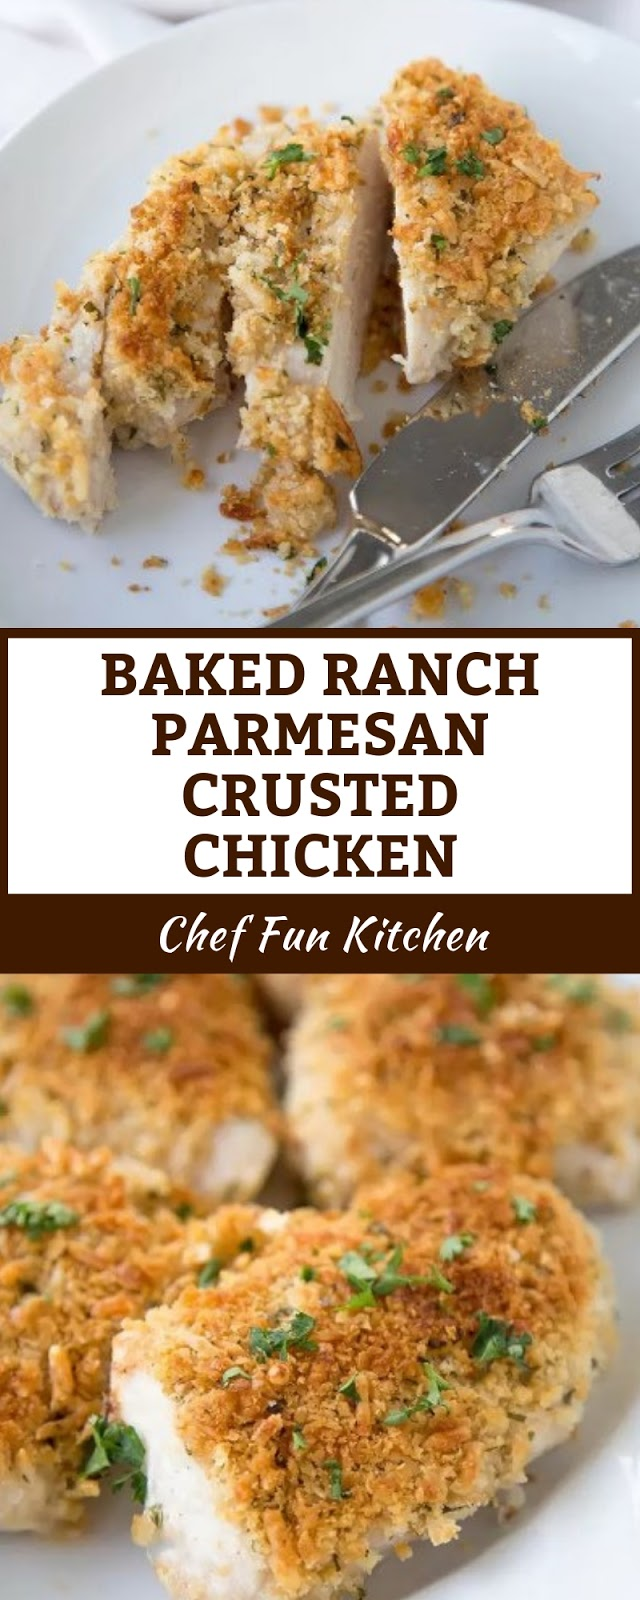 BAKED RANCH PARMESAN CRUSTED CHICKEN